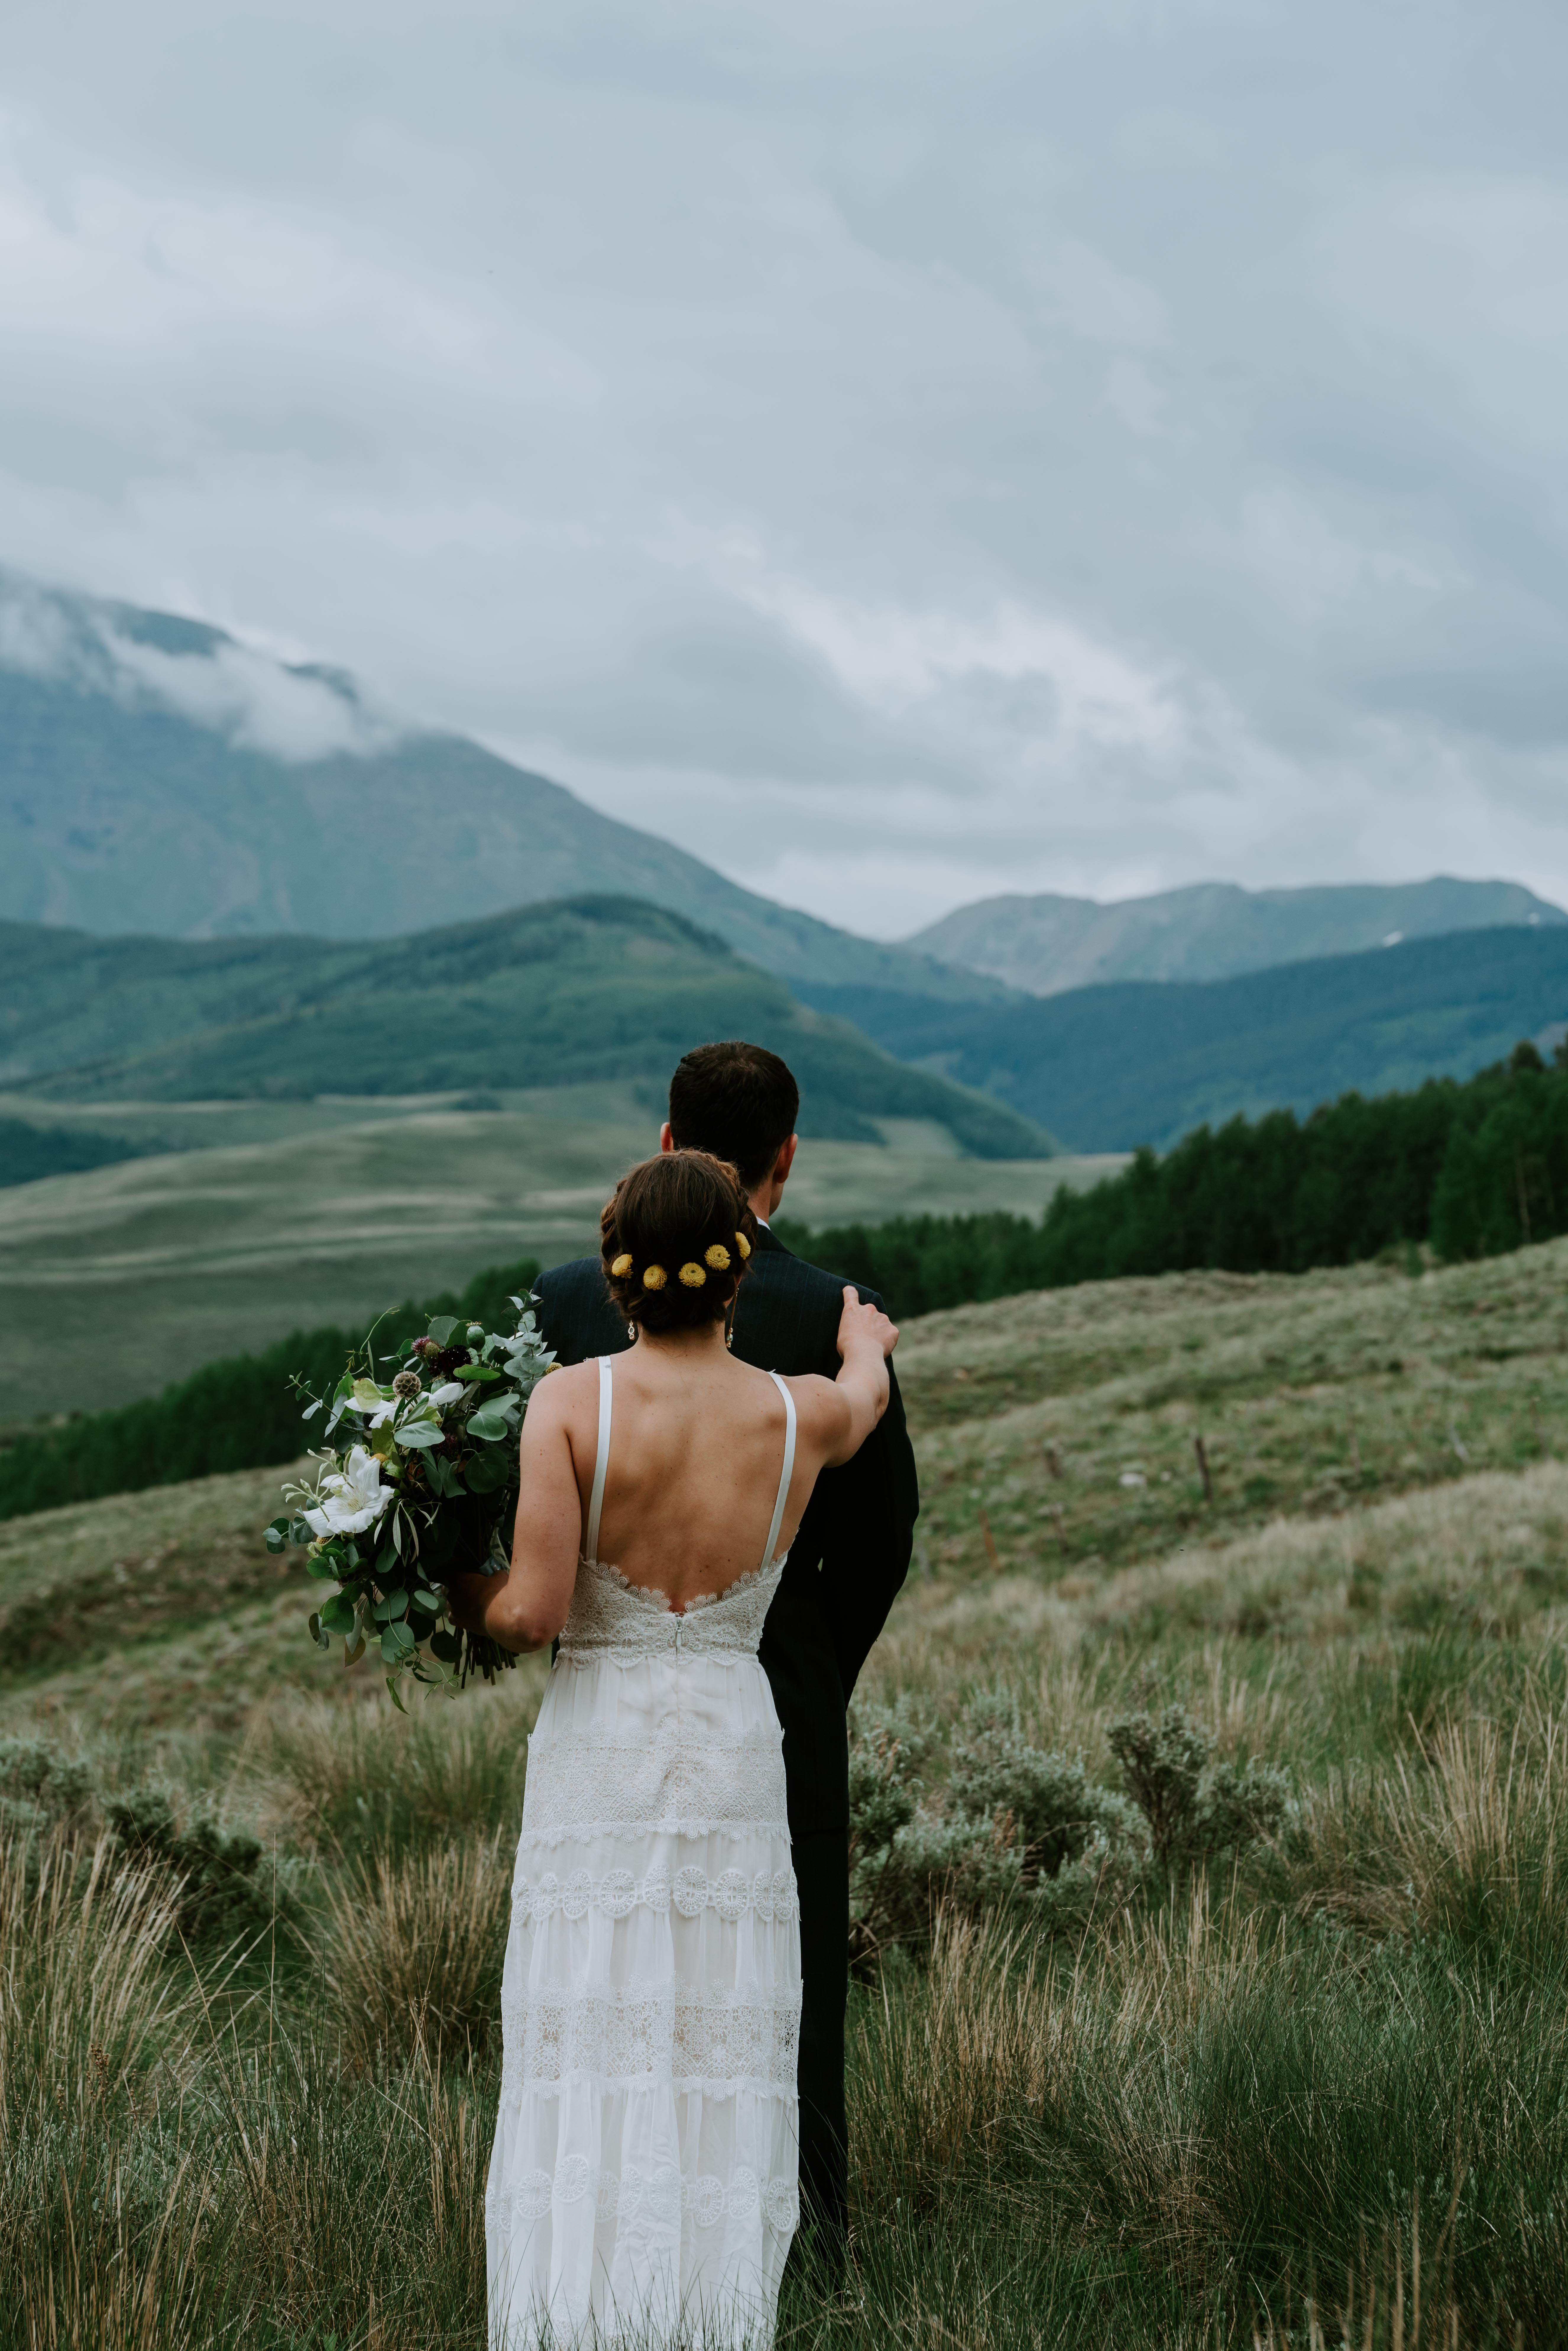 Laura_Alexe_Wedding_Crested_Butte_MegONeillPhotography__180616_30